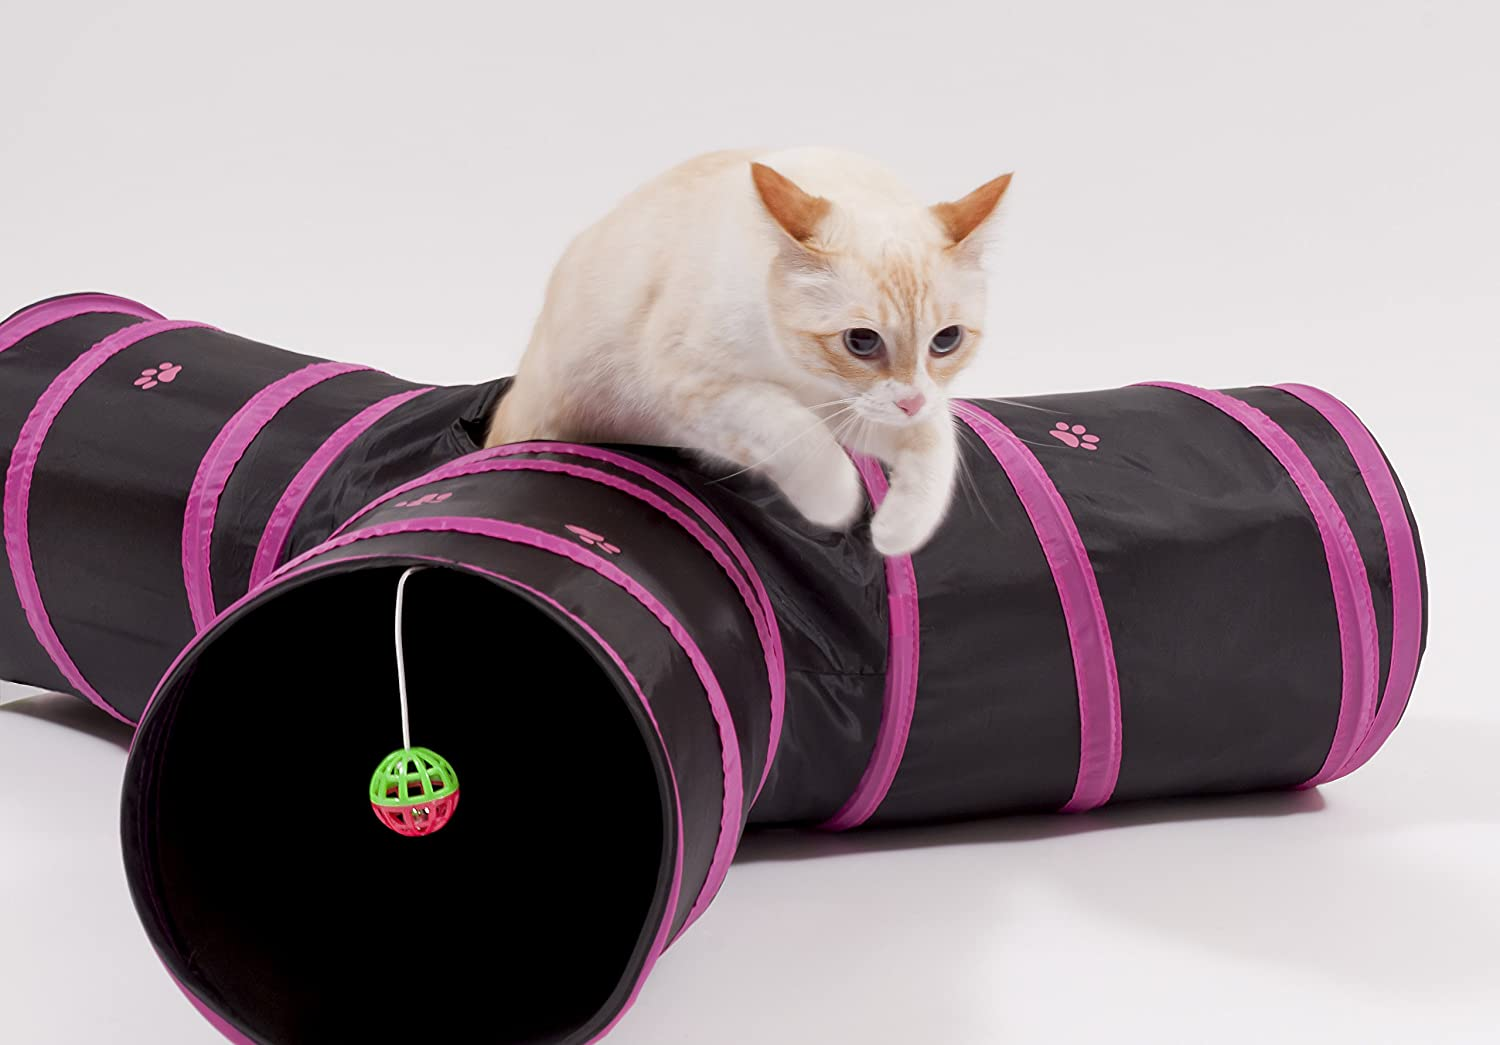 and Dogs Collapsible 3 Way Play Toy Kittens Tube Fun for Rabbits Pink Prosper Pet Cat Tunnel